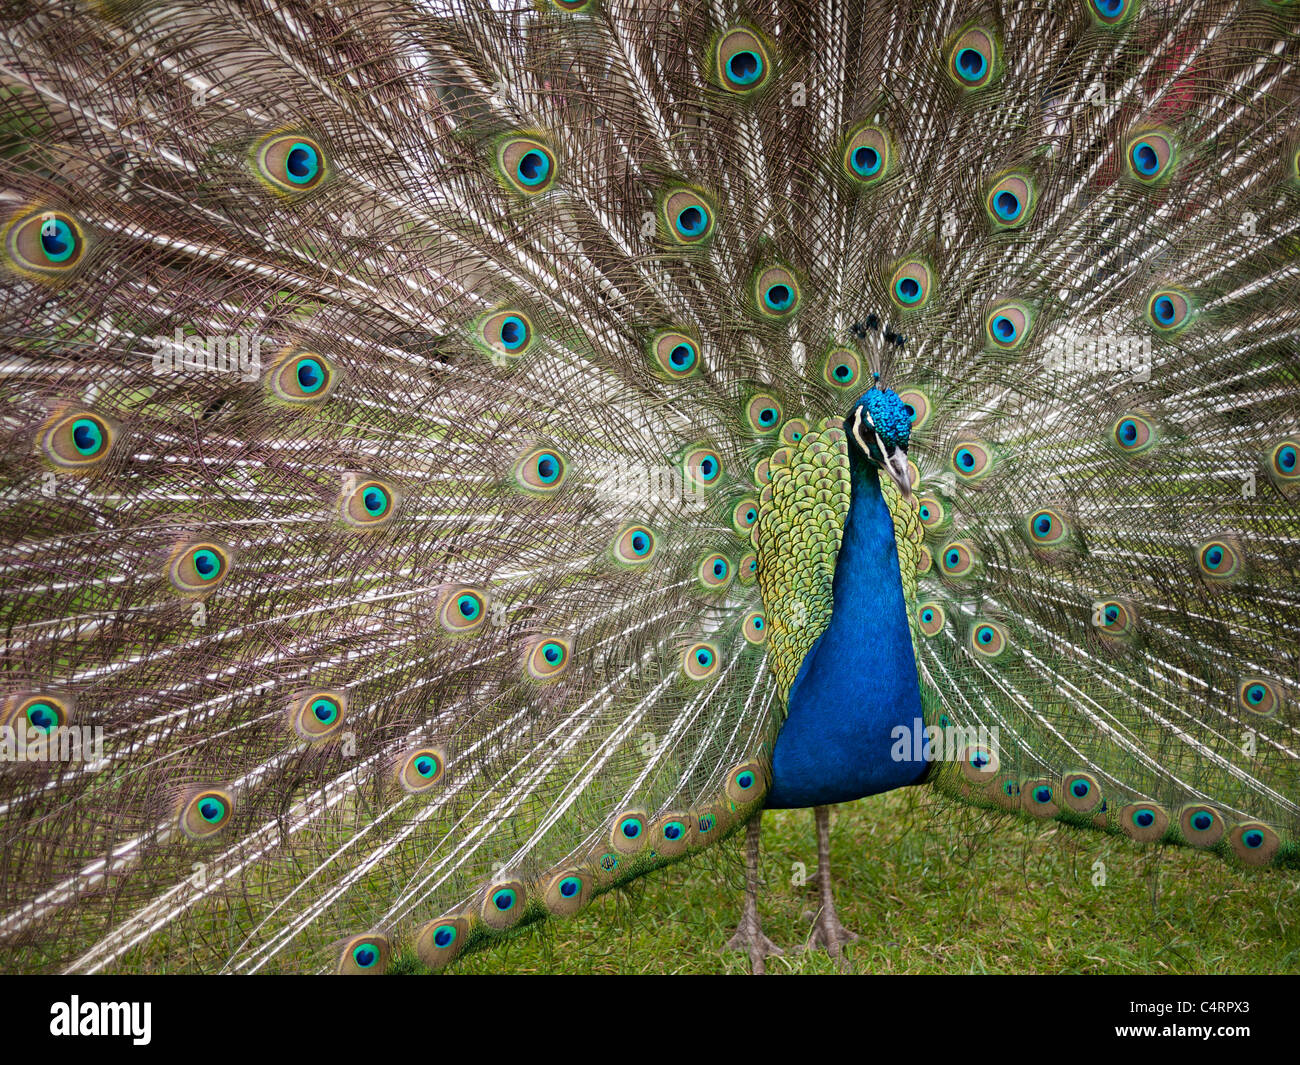 Peacock with feathers extended in courtship display, close up. Stock Photo